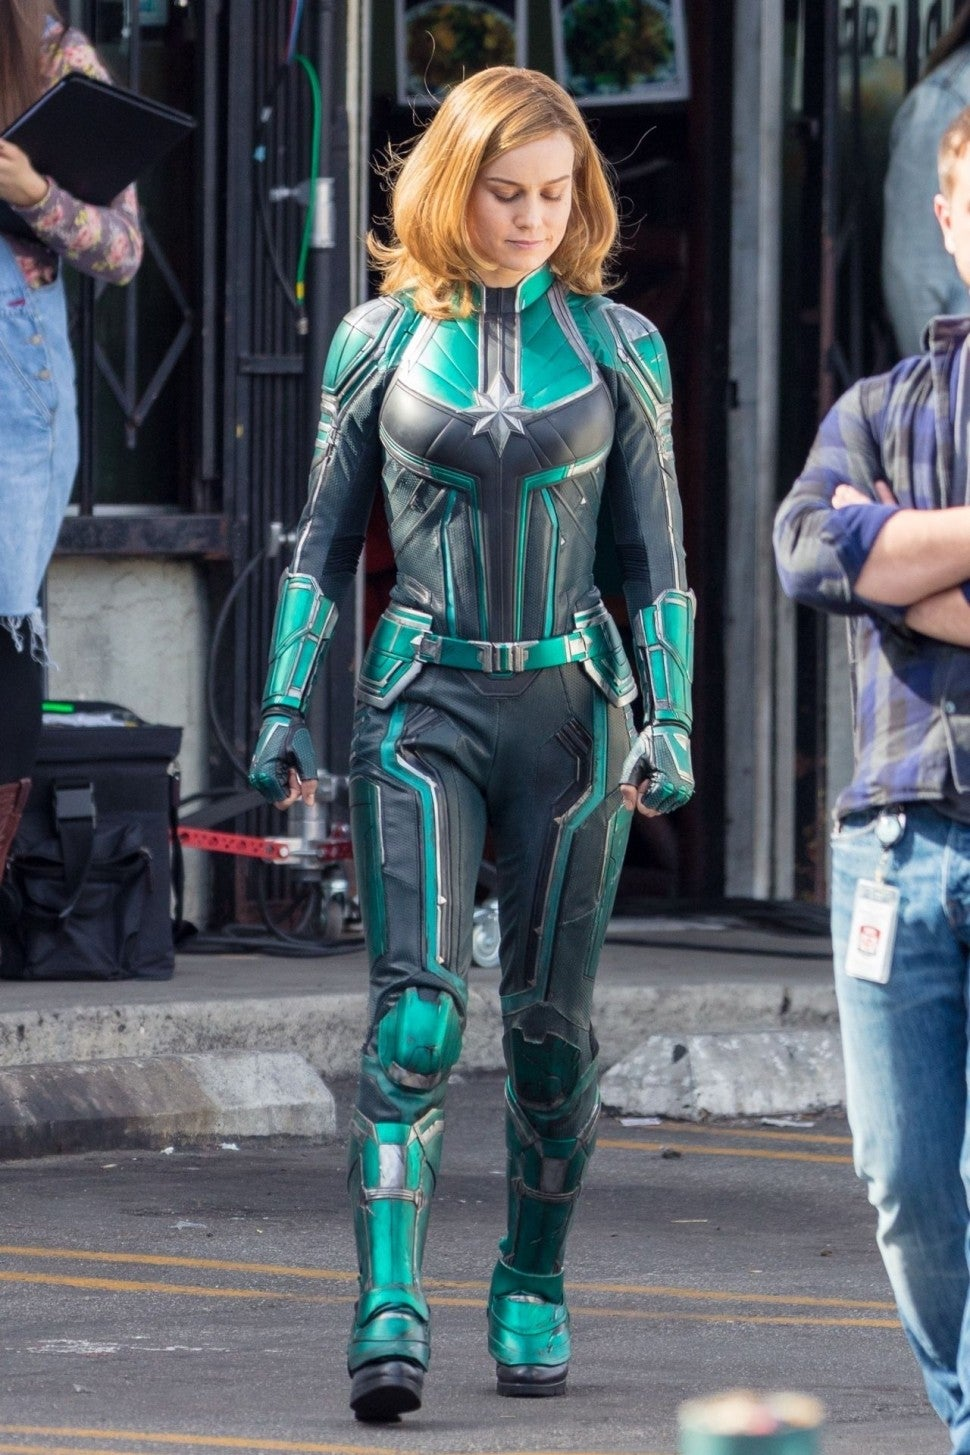 Brie Larson S Captain Marvel Costume Has Fans Freaking Out Here S Why Entertainment Tonight That itself is a rarity when it comes. brie larson s captain marvel costume